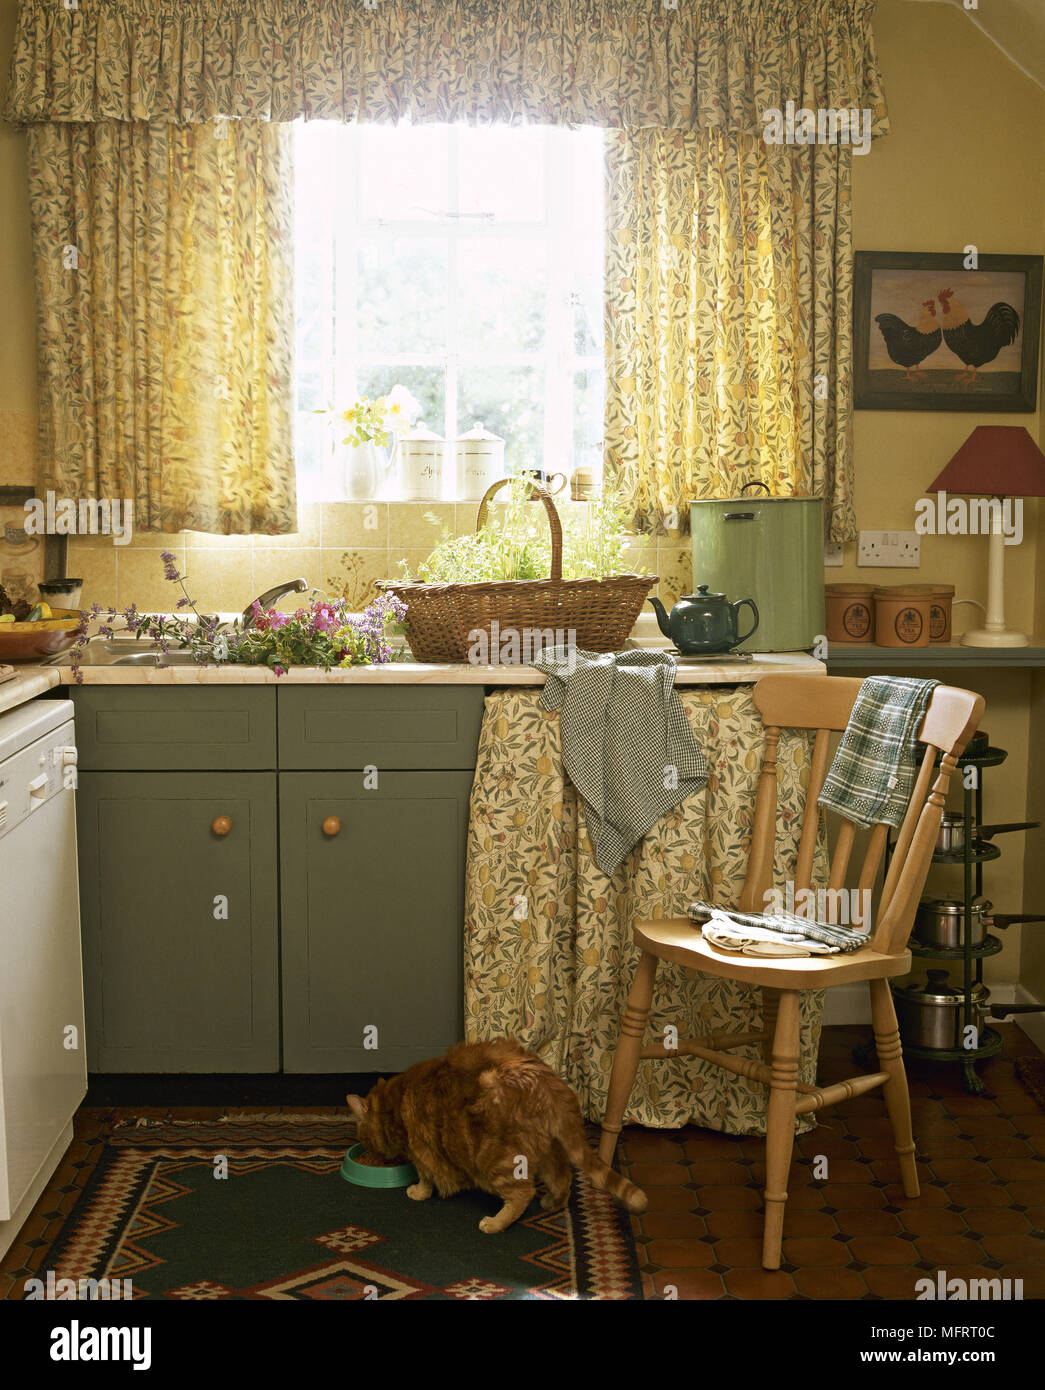 Country Yellow Kitchen With Green Cabinets Floral Curtains And A Cat Eating From A Bowl On The Floor Stock Photo Alamy